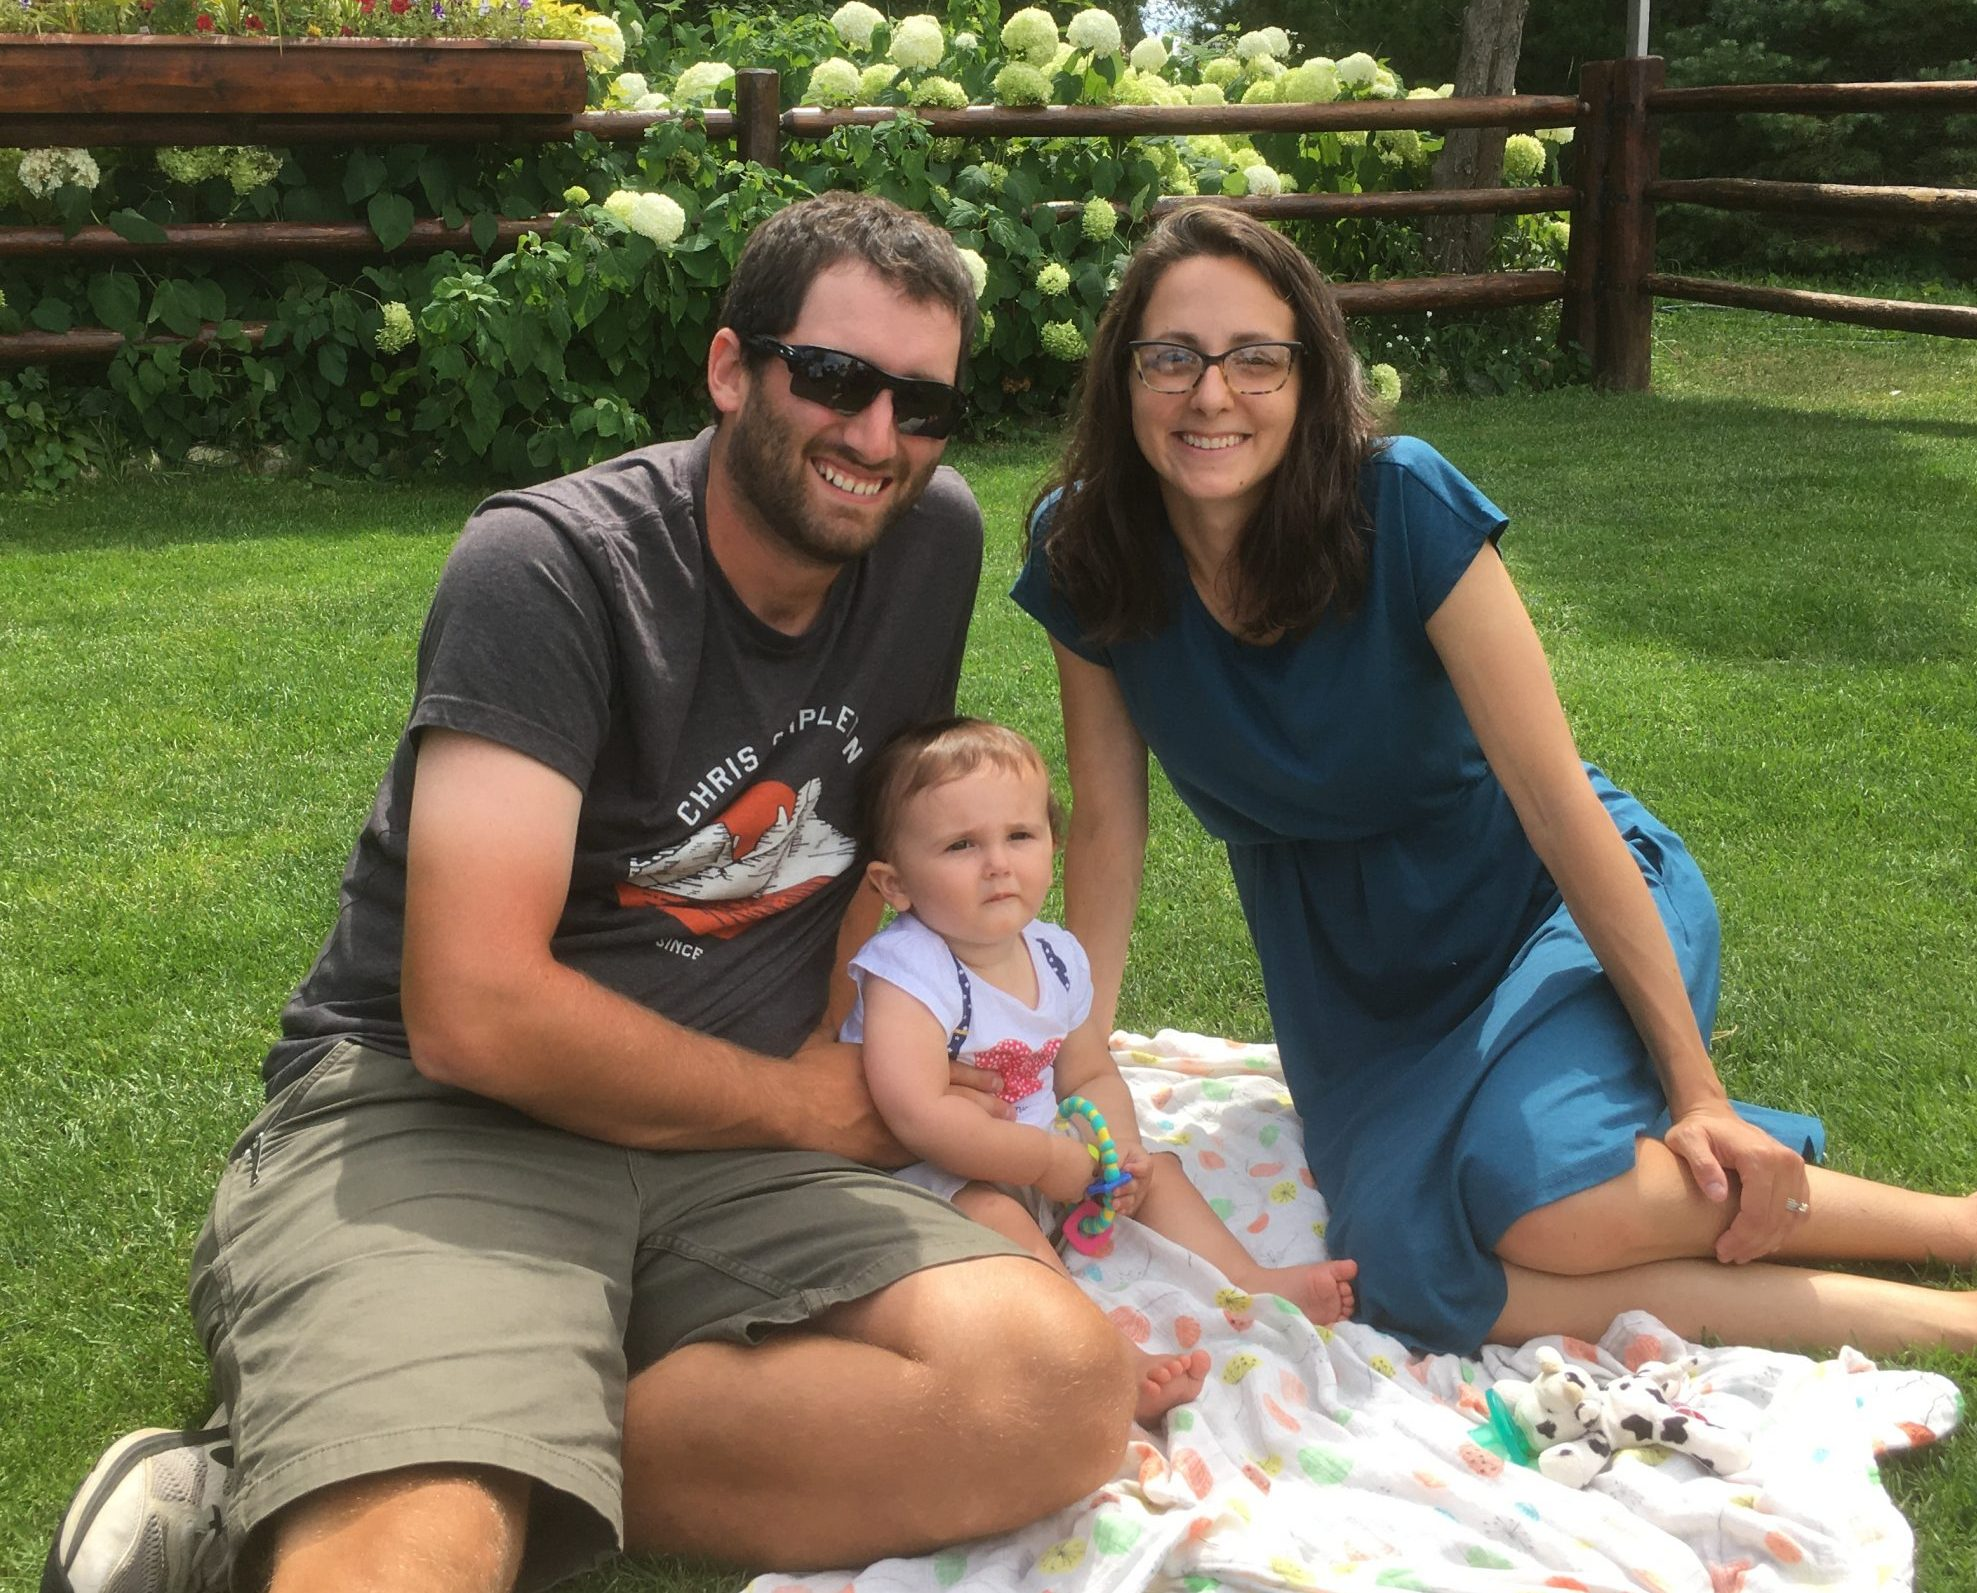 family of three on vacation, baby on blanket